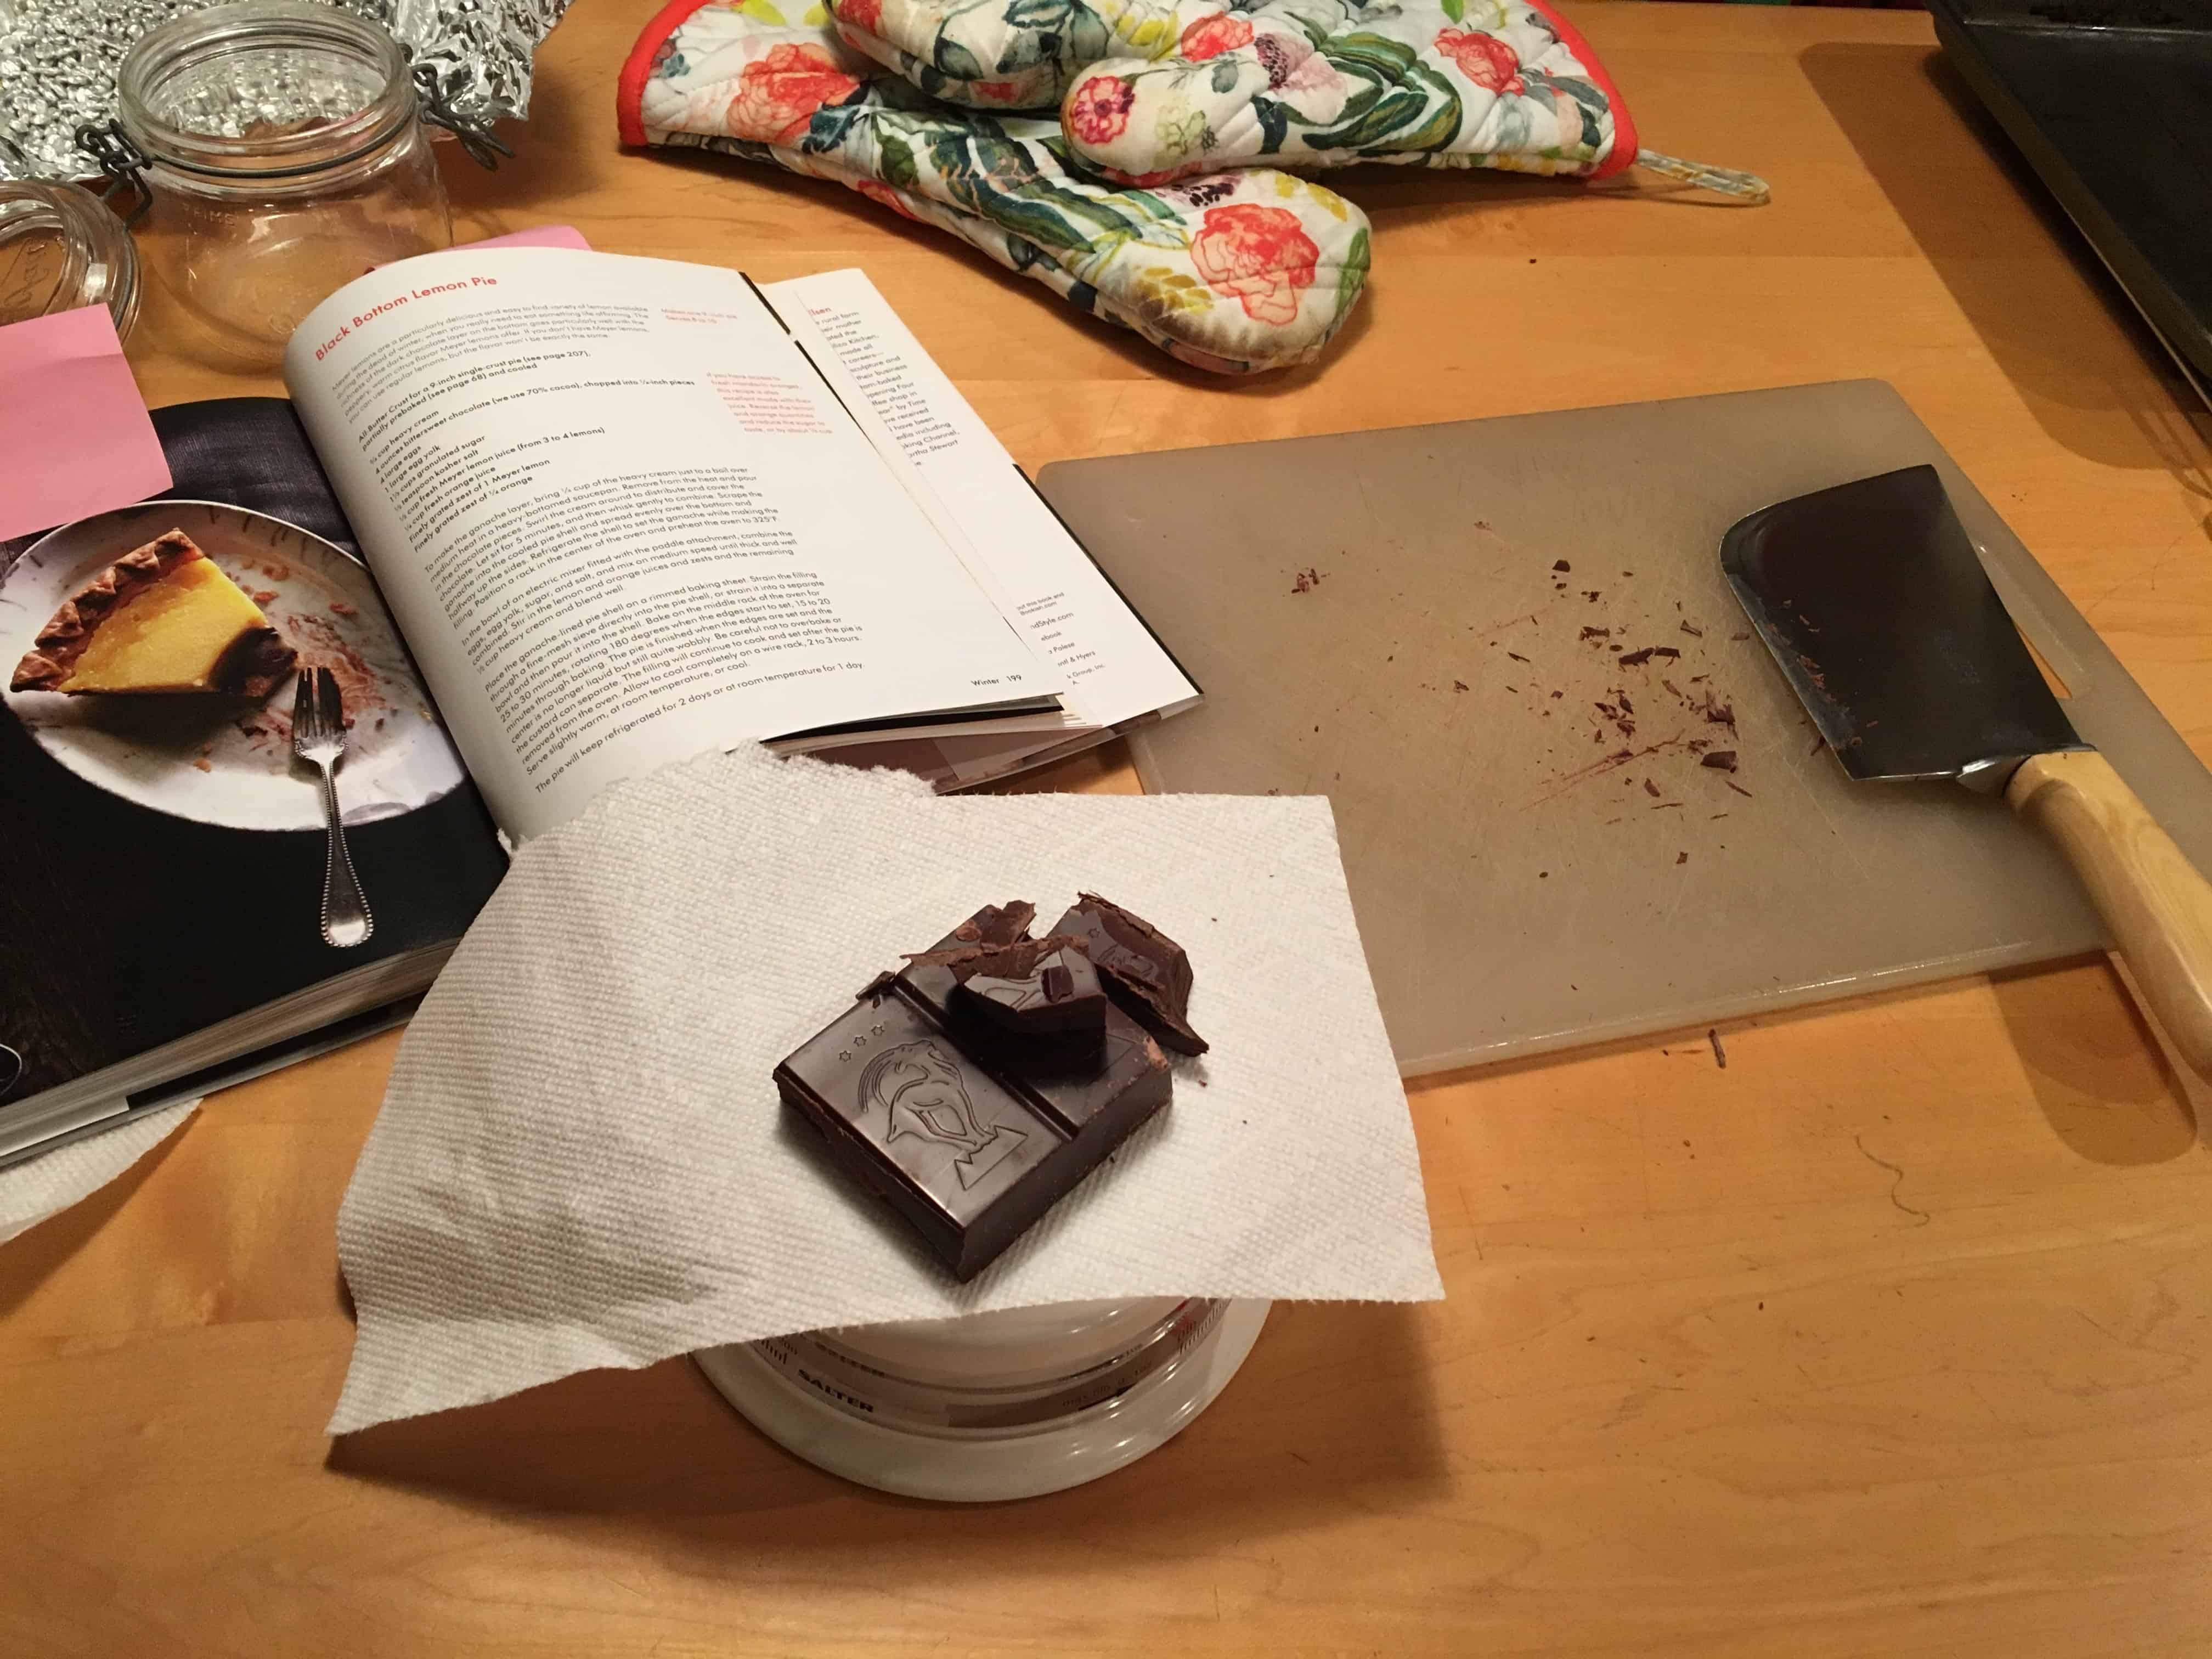 Weighing the chocolate.